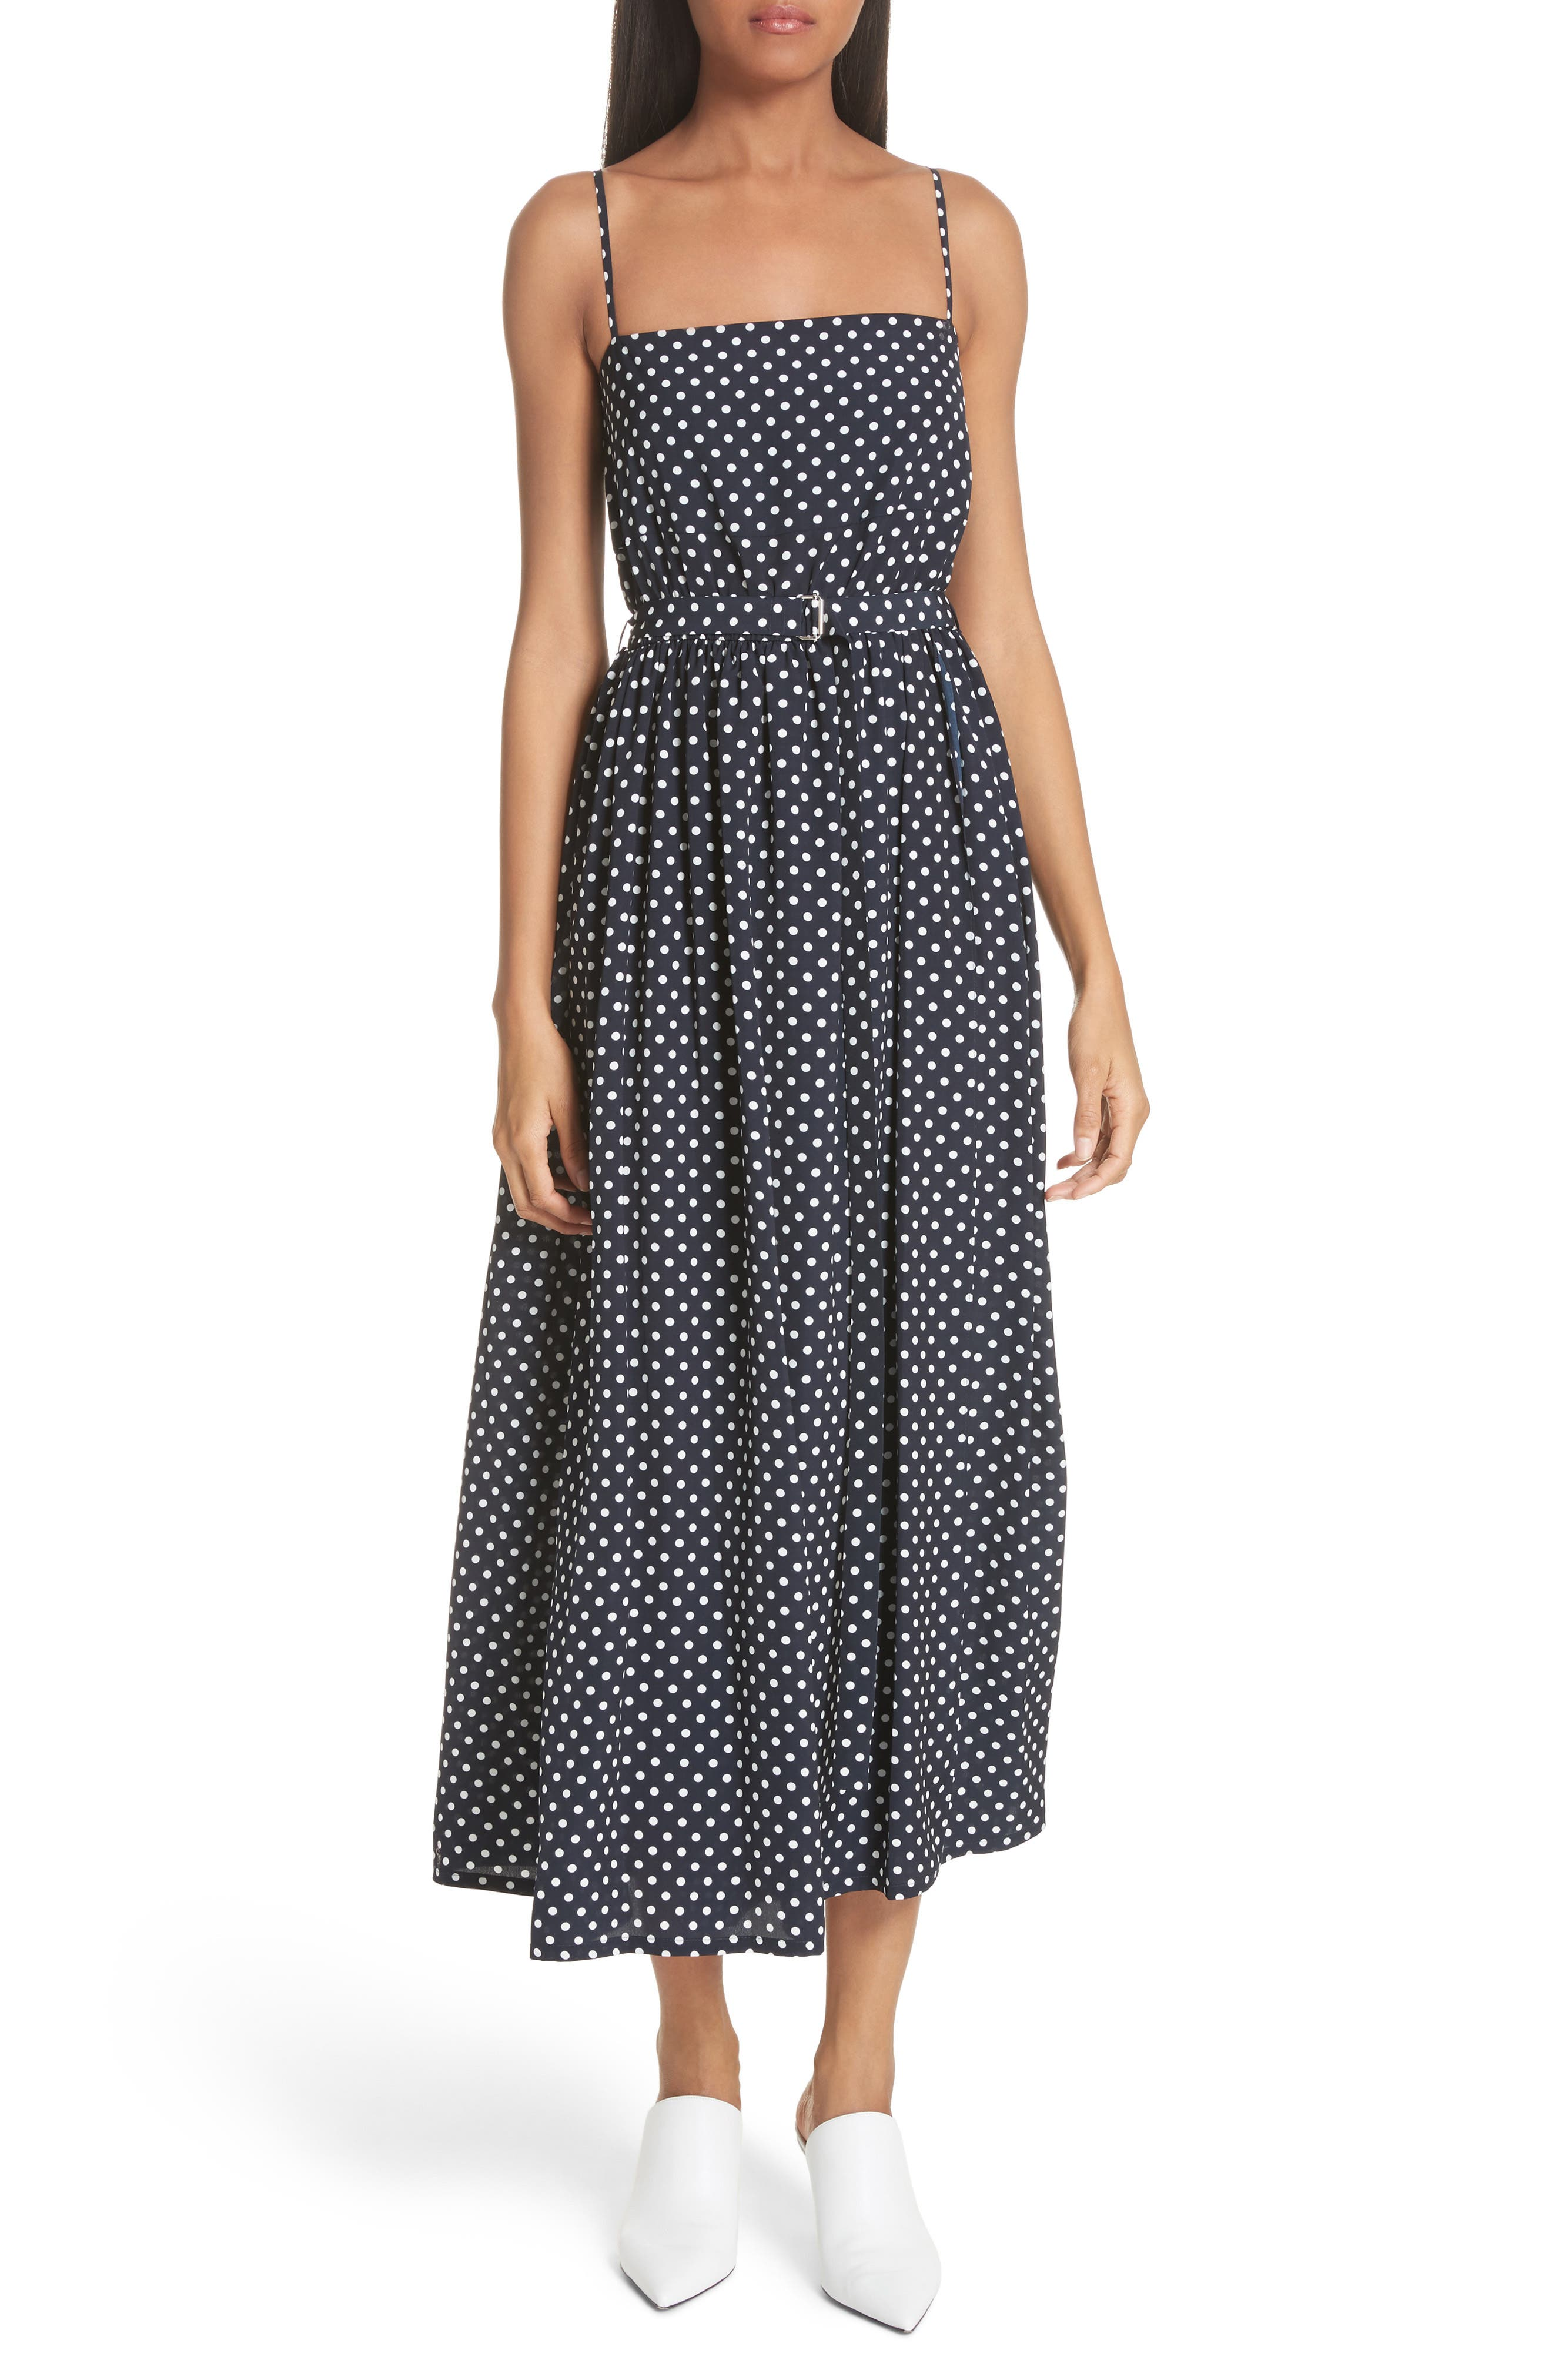 Polka Dot Midi Dress,                             Main thumbnail 1, color,                             Navy